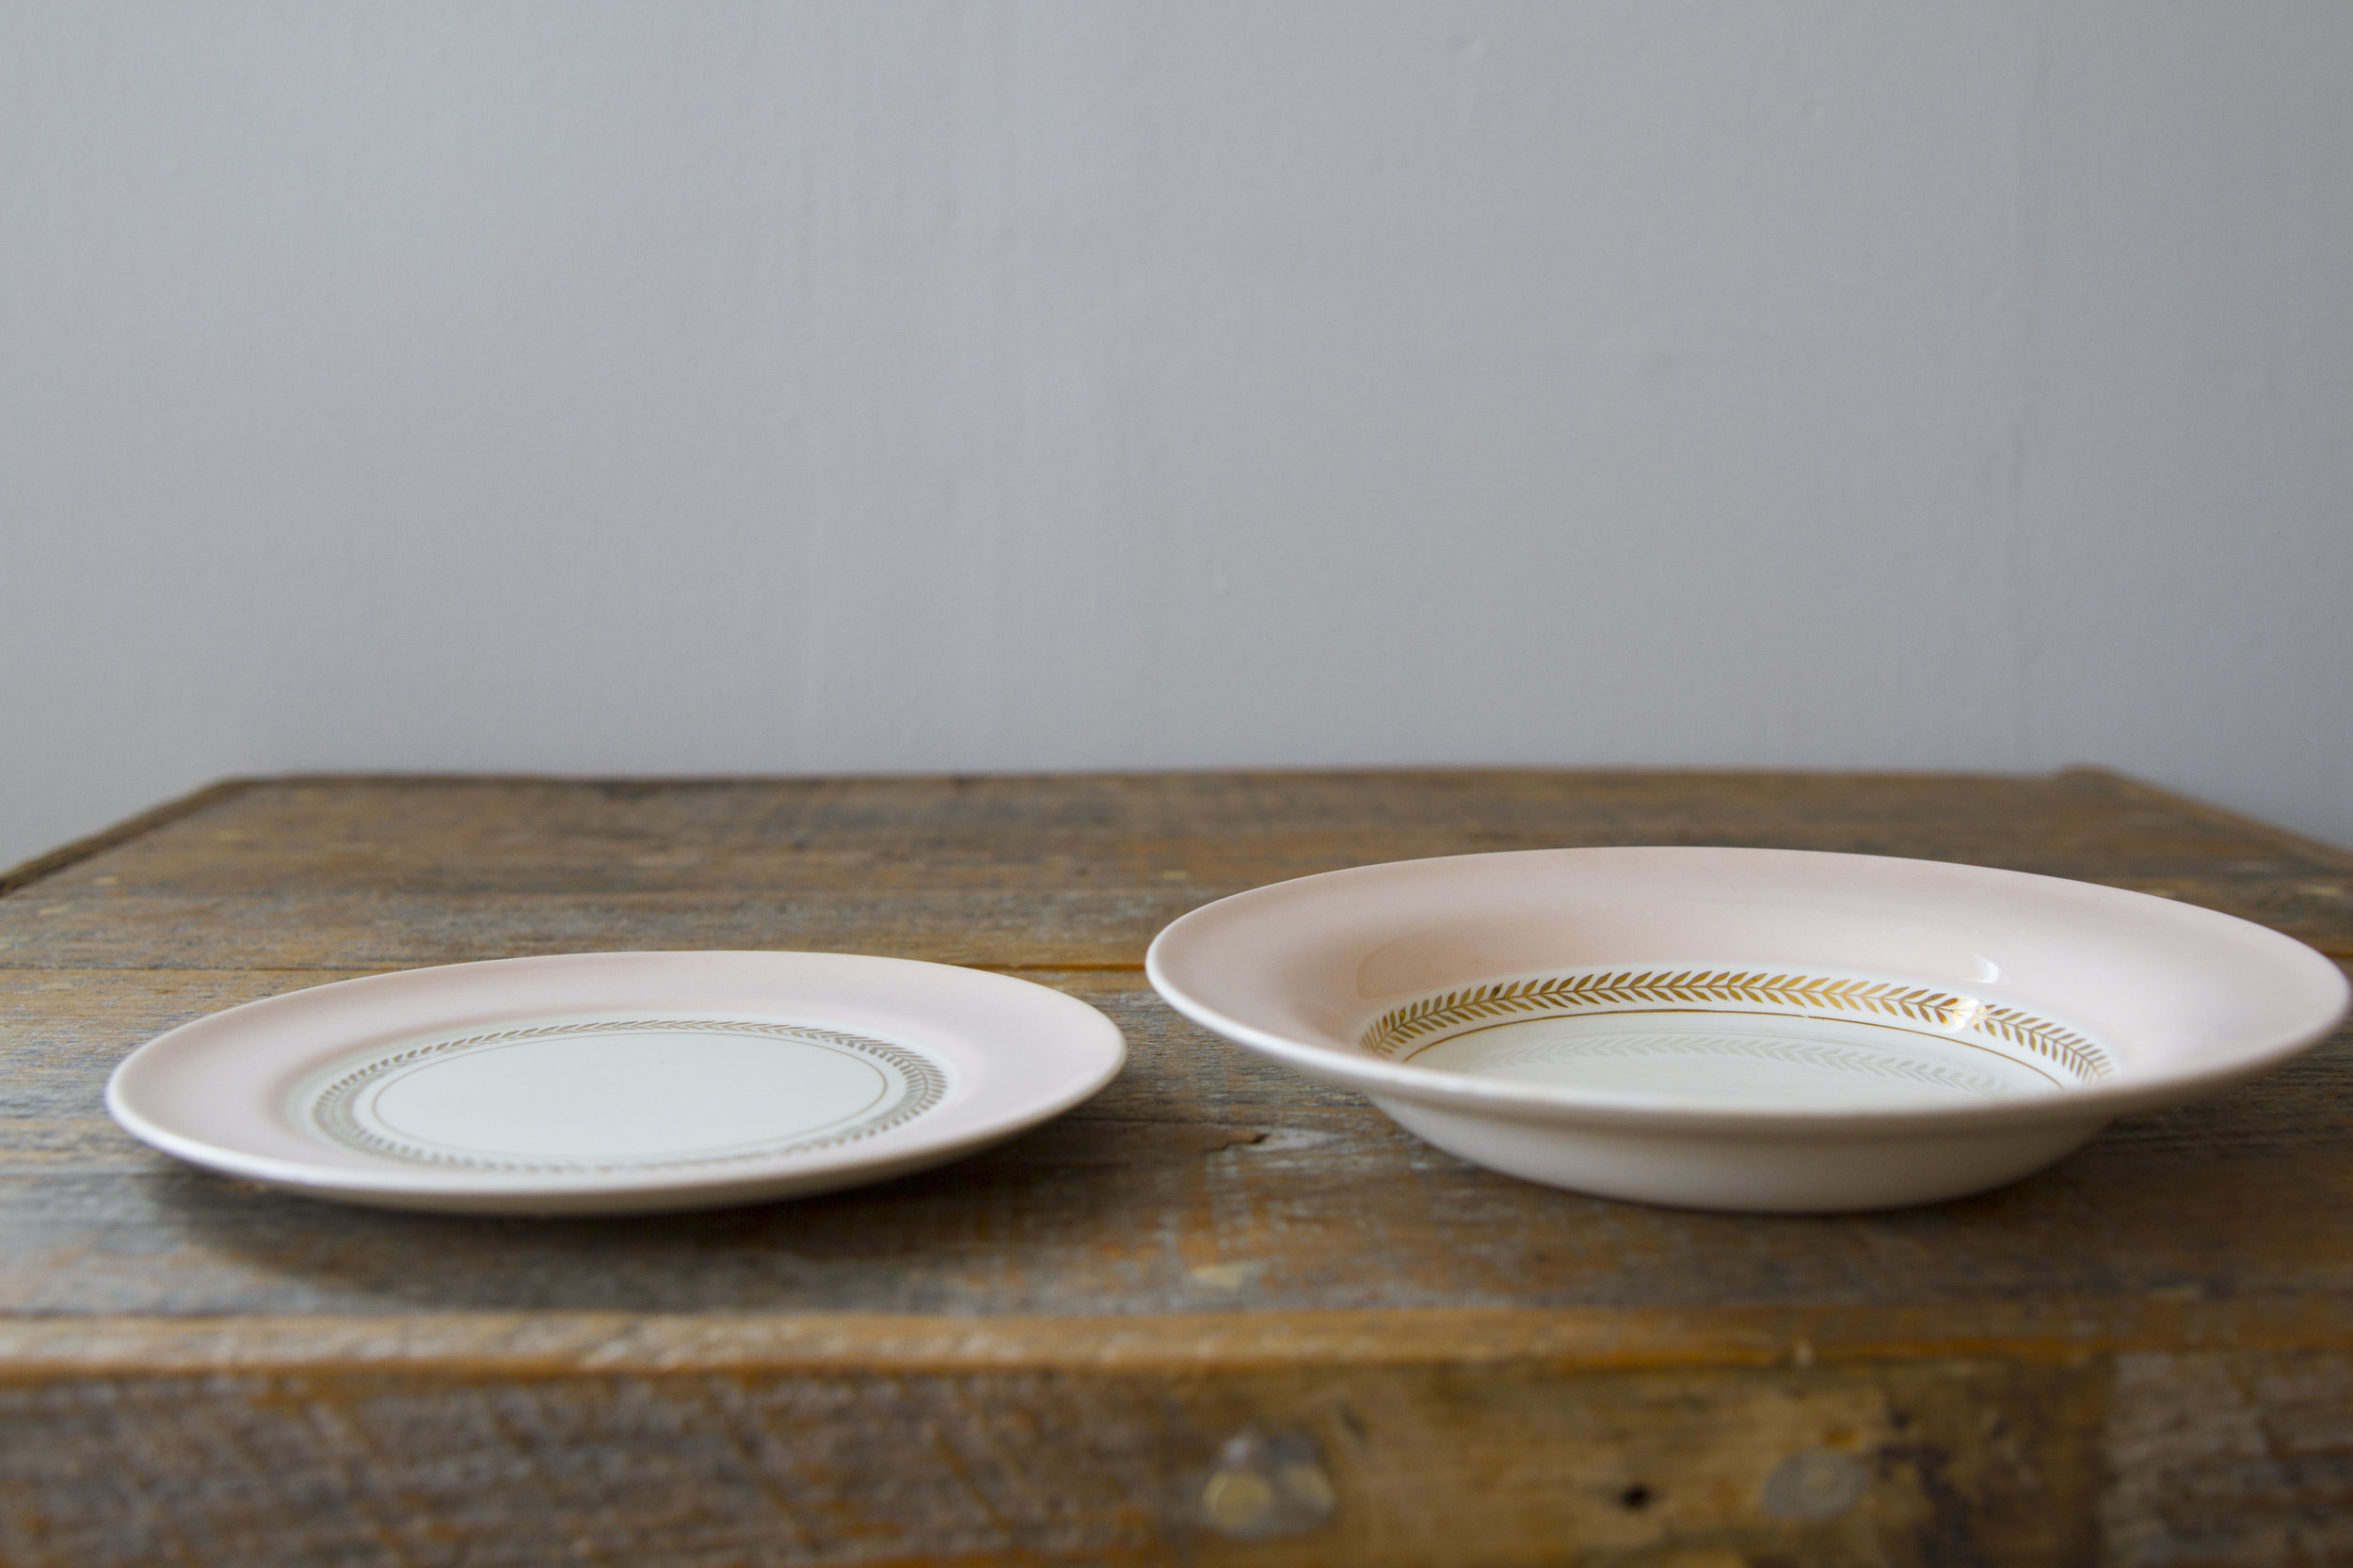 Quantity: 2 Snack Bowls, 14 Dessert Plates  Price: $2 each